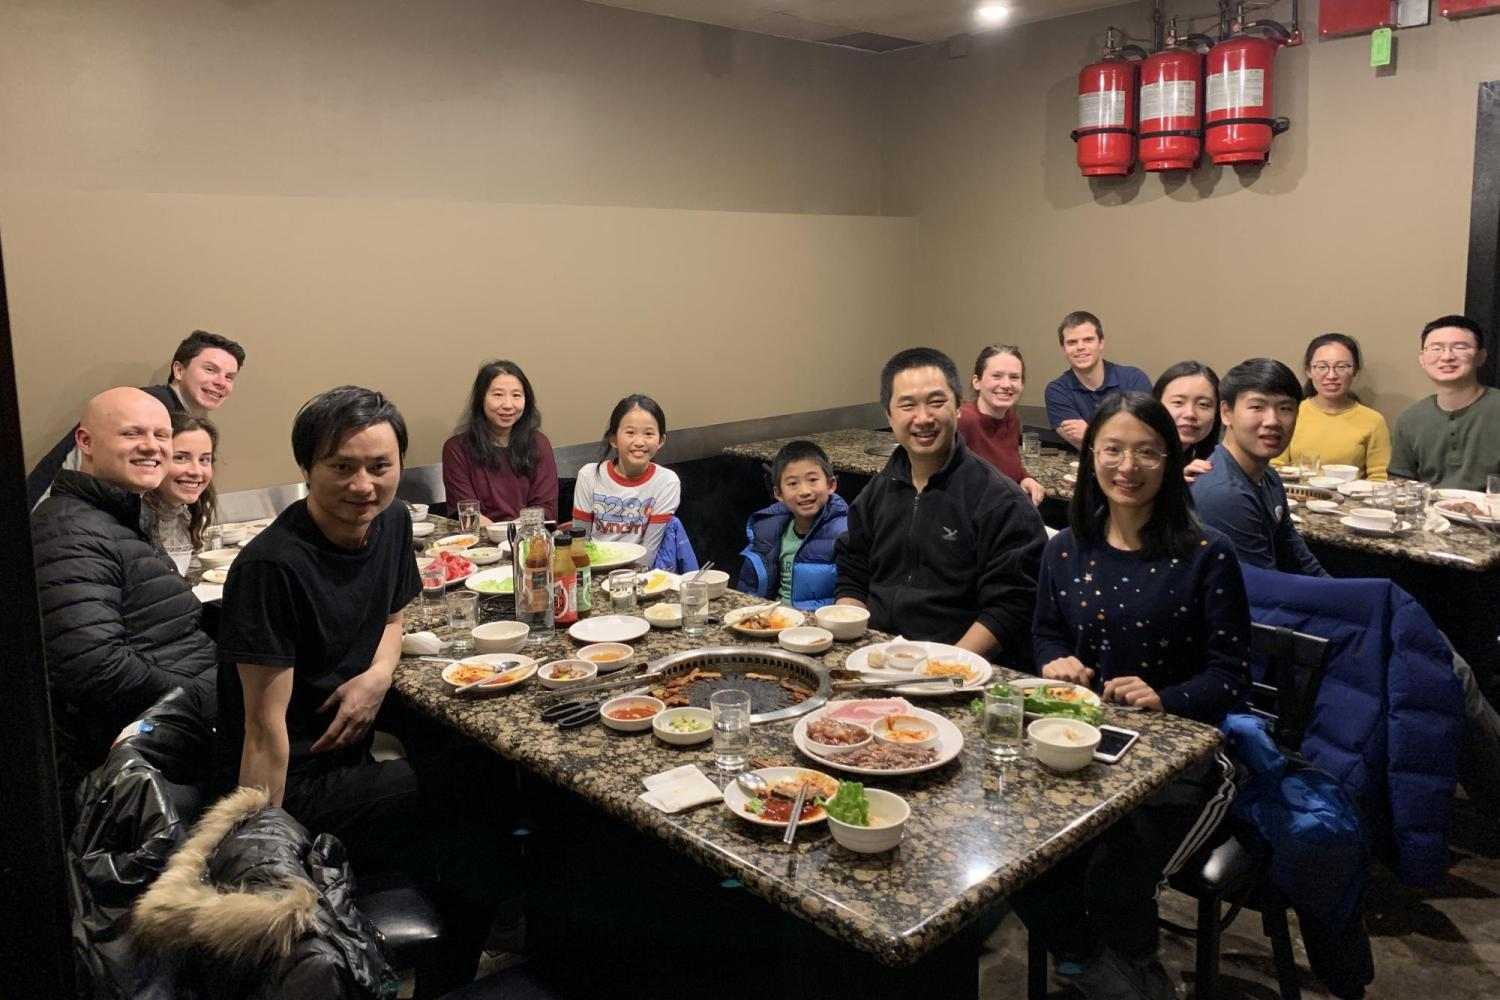 Group dinner to celebrate Yangyang passing his defense